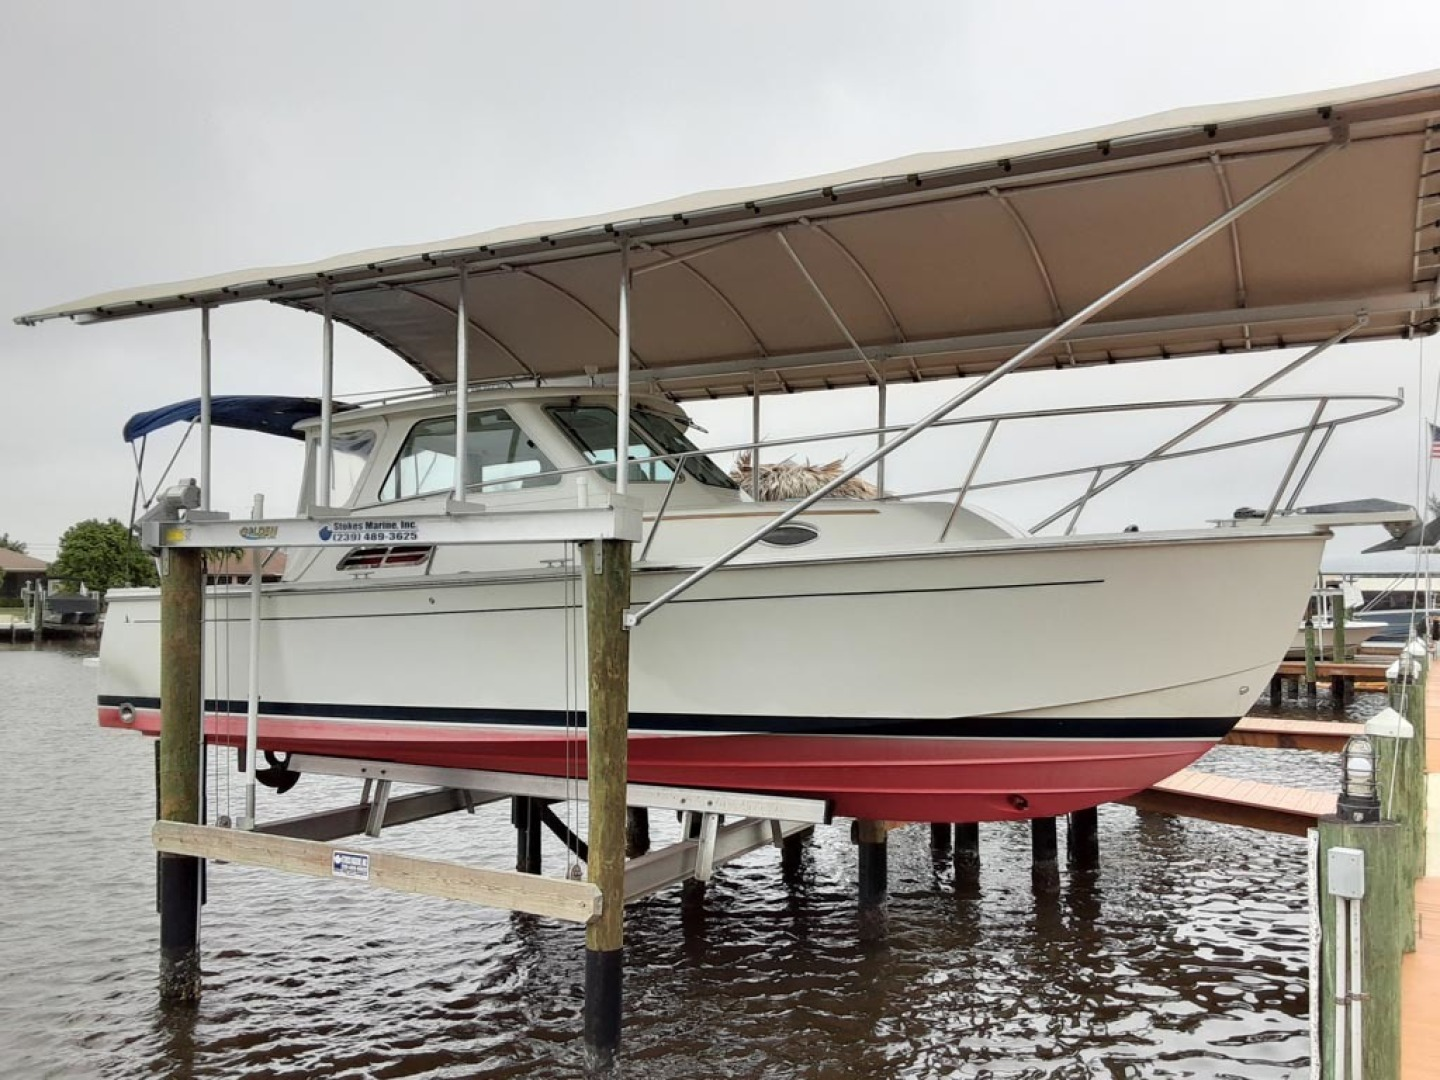 Back Cove-Express 2007-Patronus Cape Coral-Florida-United States Starboard Profile On Covered Lift-1596402 | Thumbnail